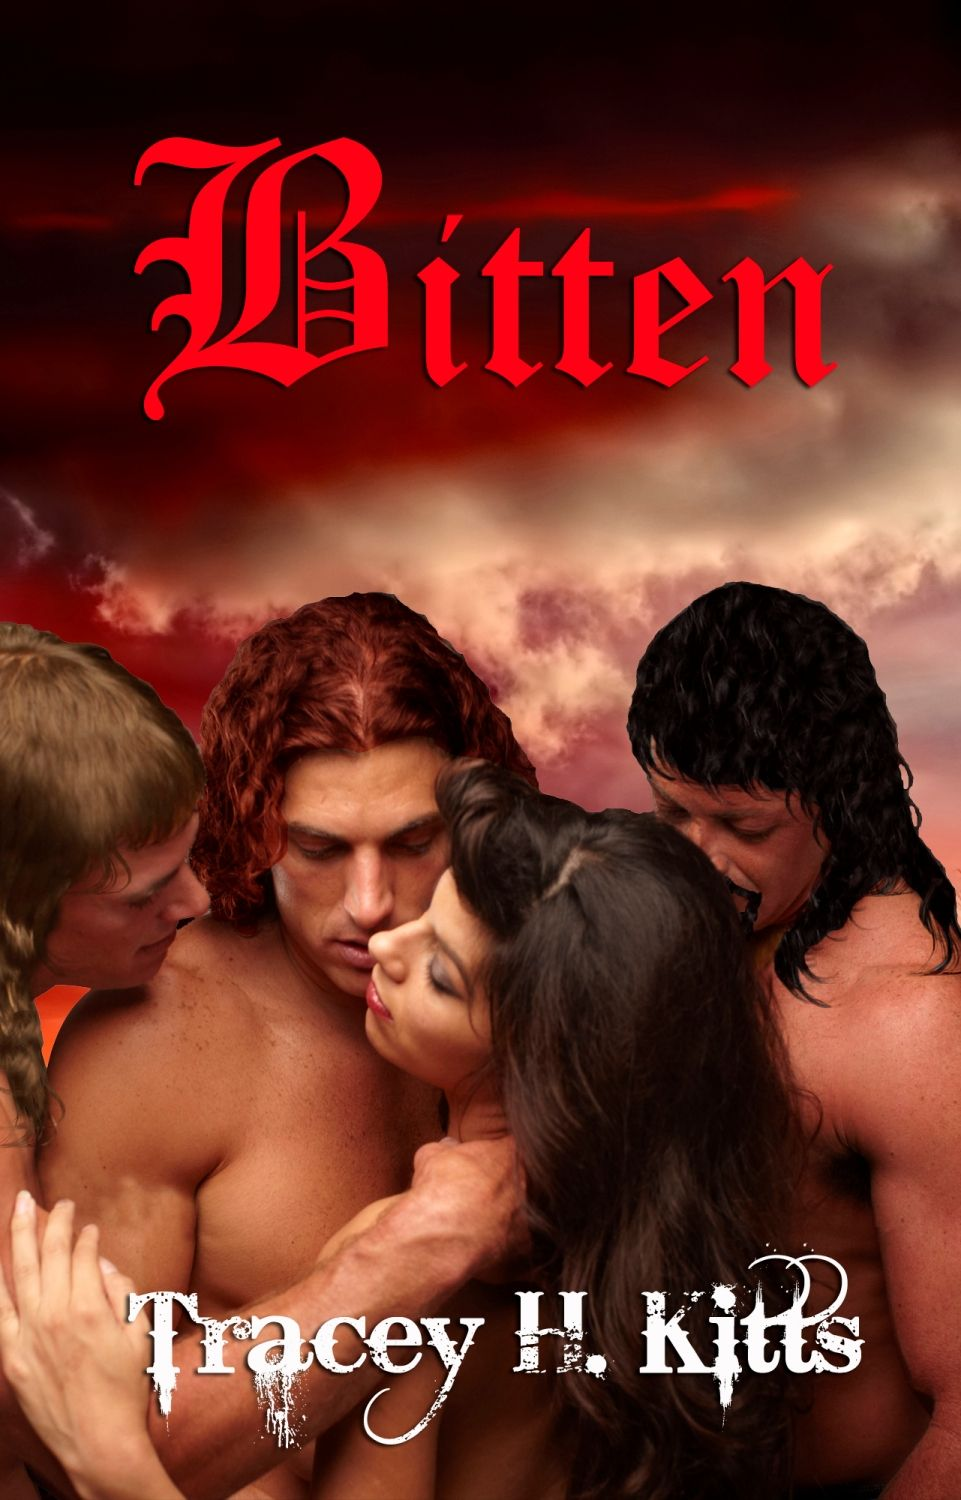 Vampire erotic publishing